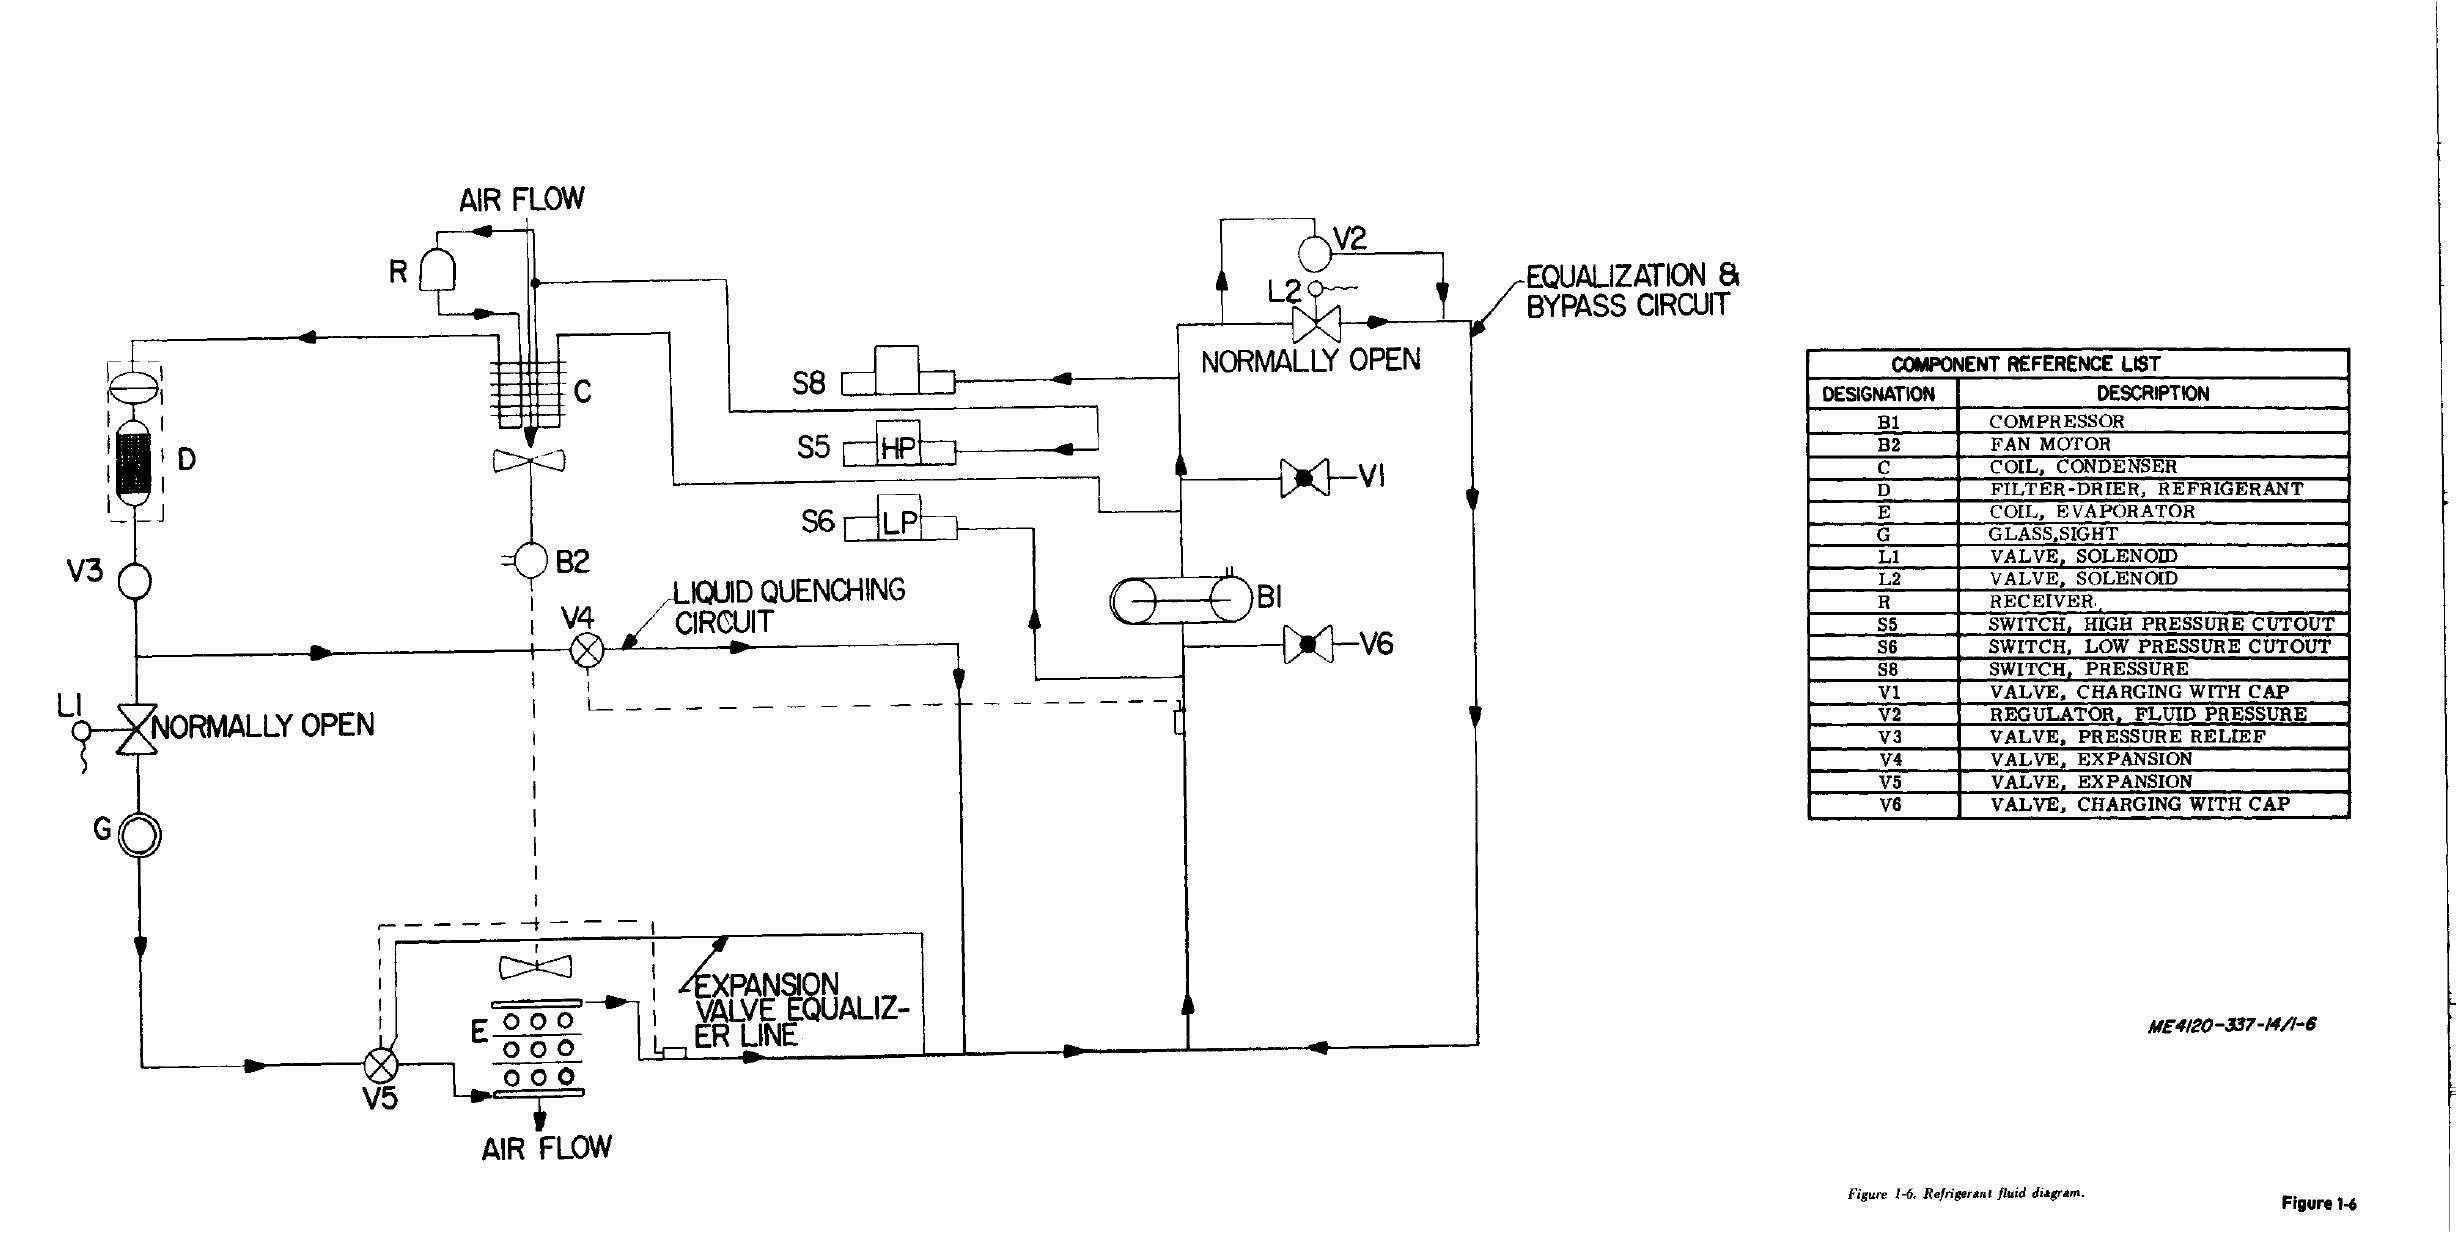 Wiring Diagram Car Air Conditioning (con imágenes)